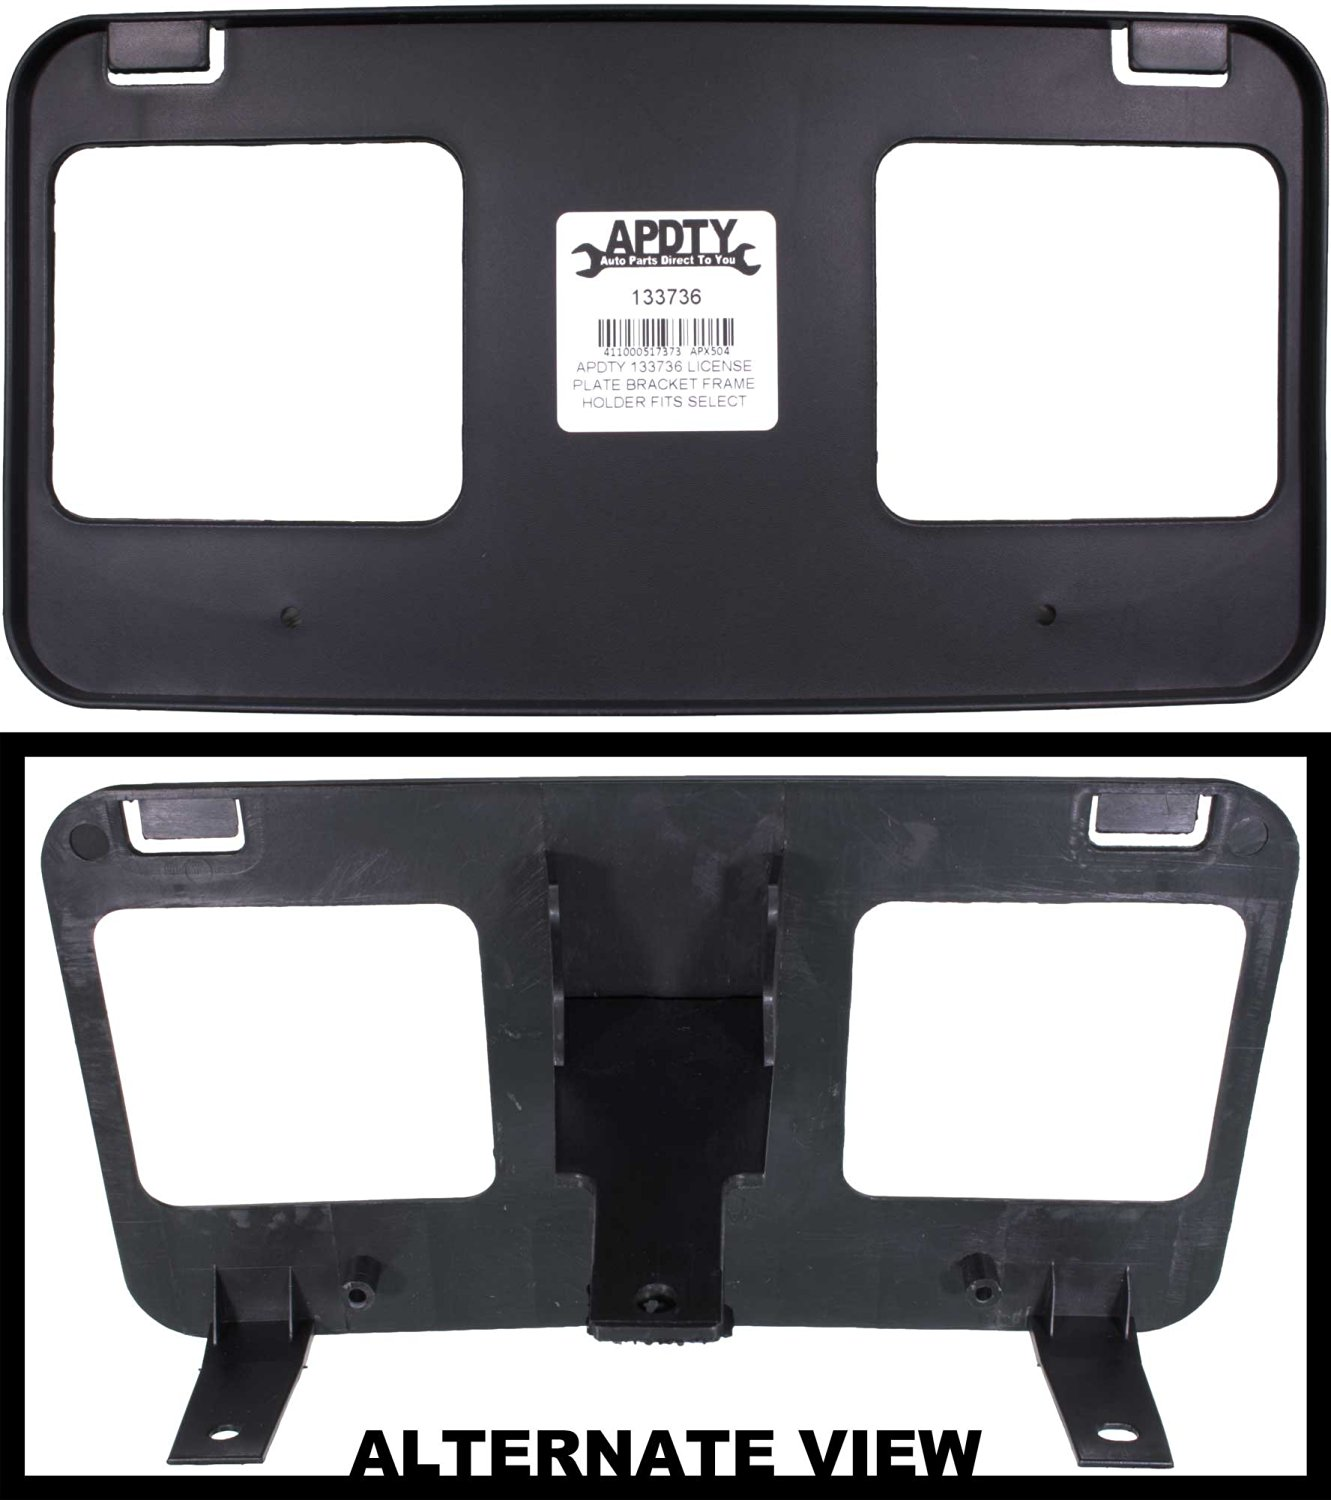 APDTY 133736 License Plate Bracket Plastic Frame Holder Fits Front (See Description For Specific Models) 1999-2004 Ford F-150 1999 F-250 (Replaces 1L3Z-17A385-AAA, 1L3Z17A385AAA)